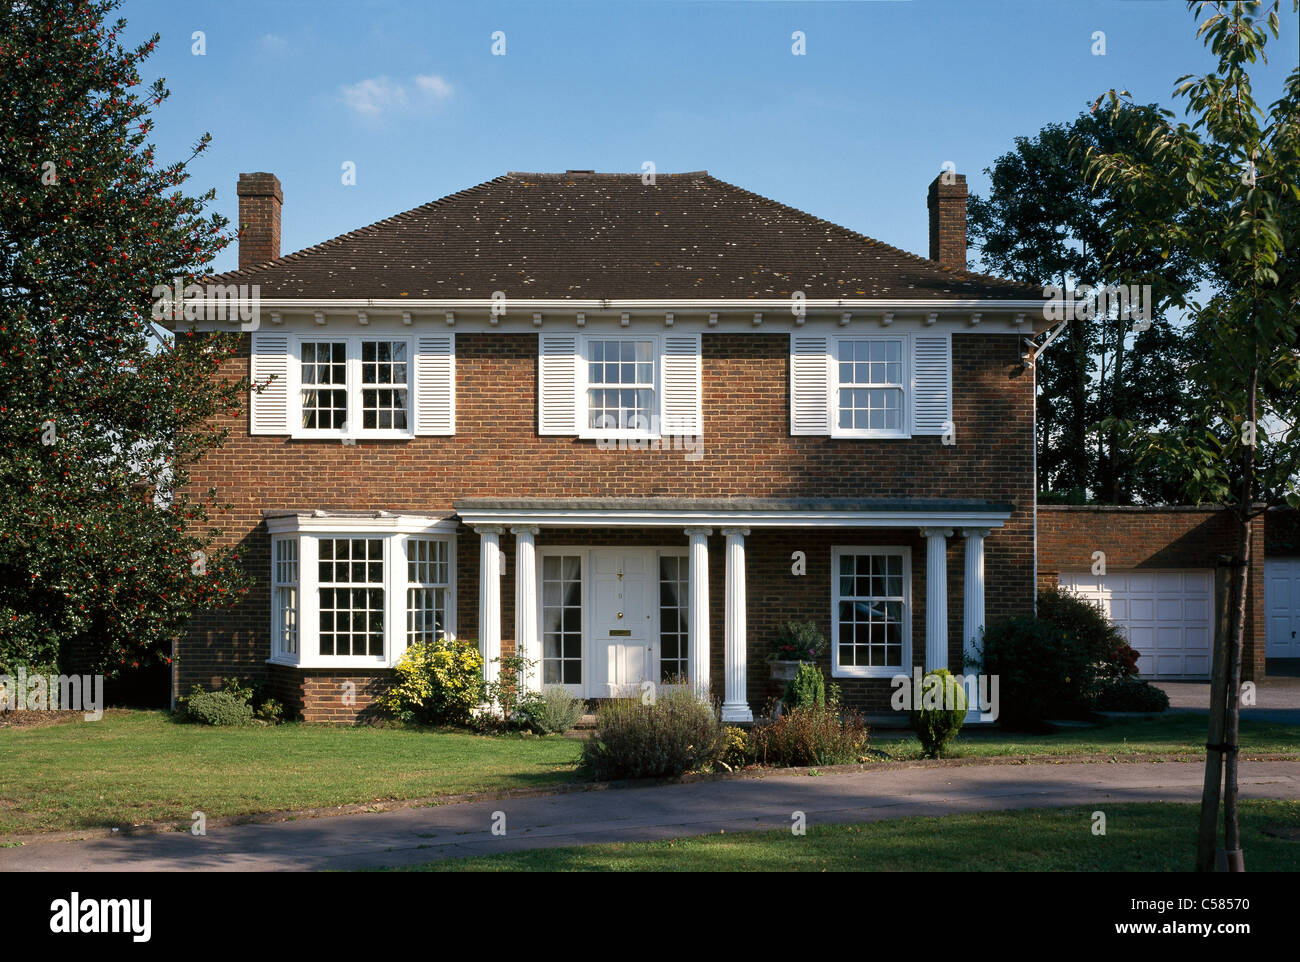 Detached House With Portico Columns And Double Garage